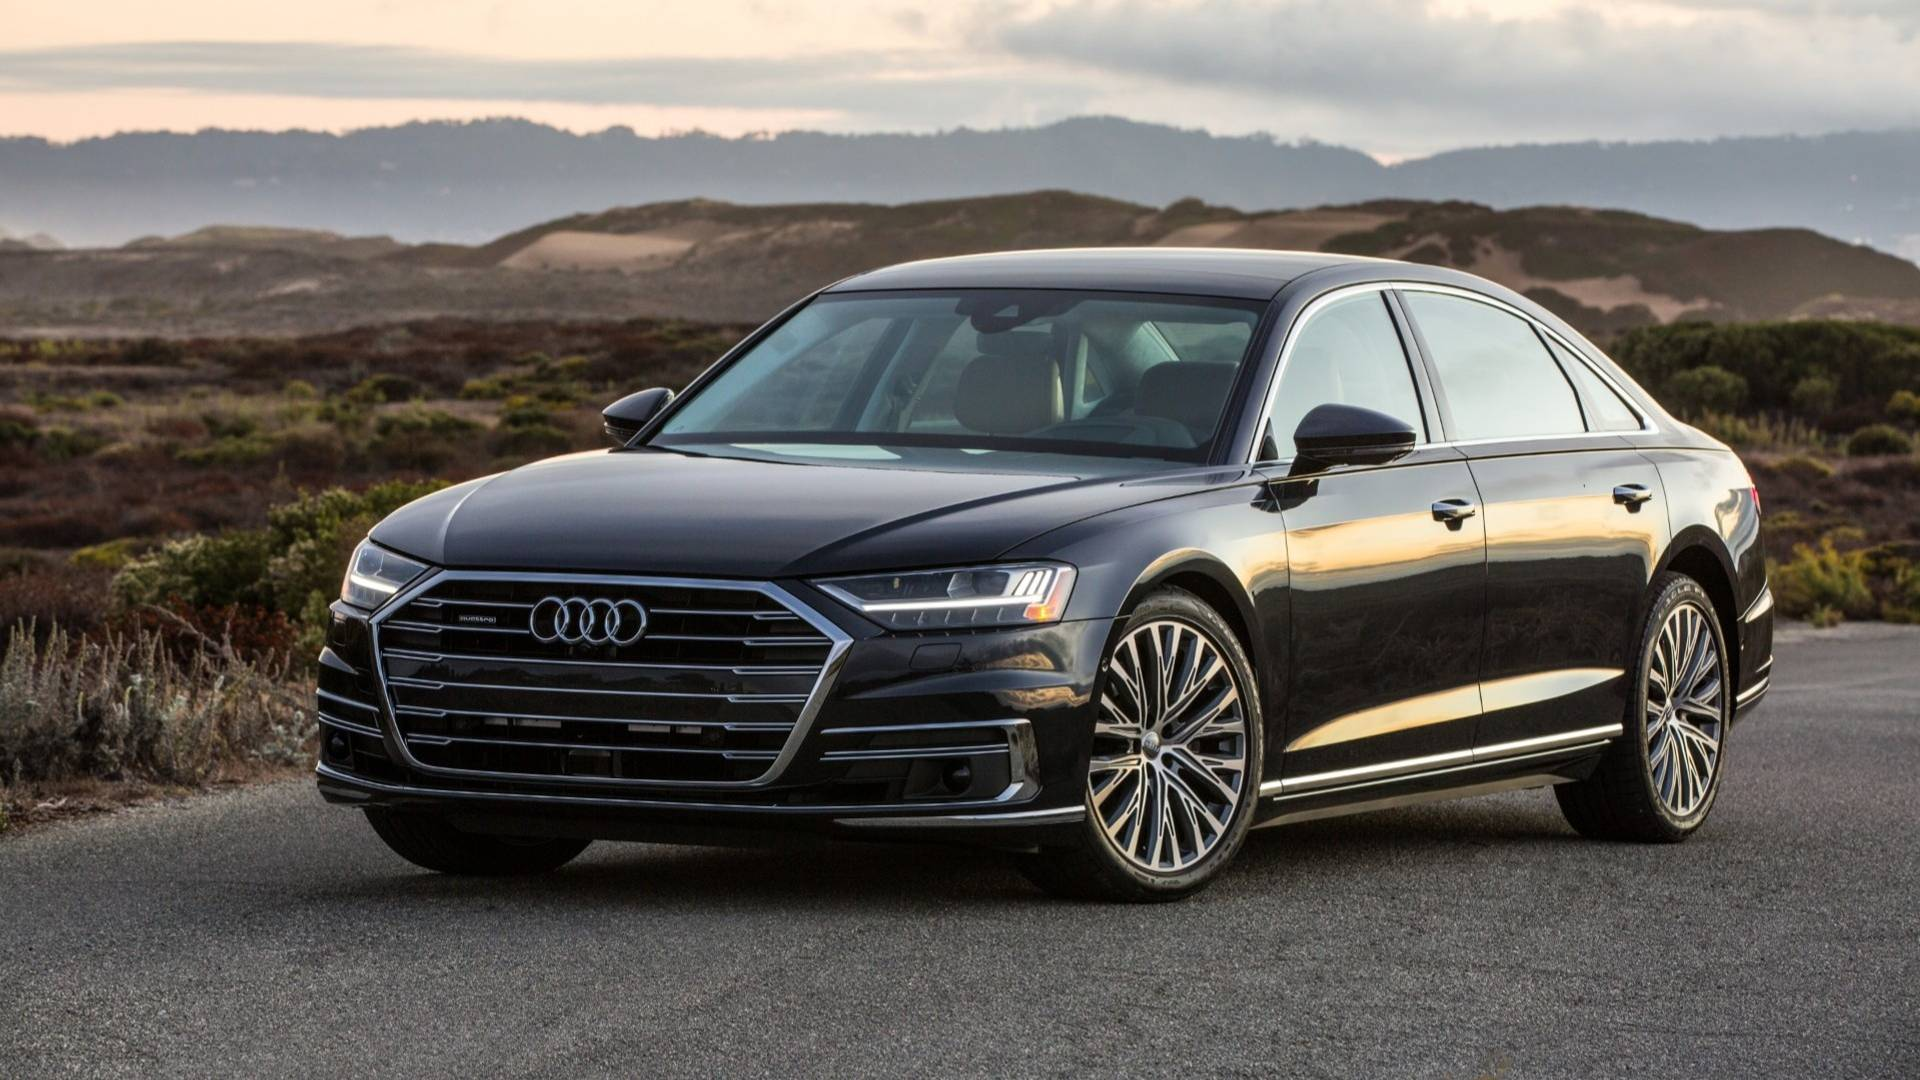 2019 Audi A8l First Drive Tons Of Teutonic Tech